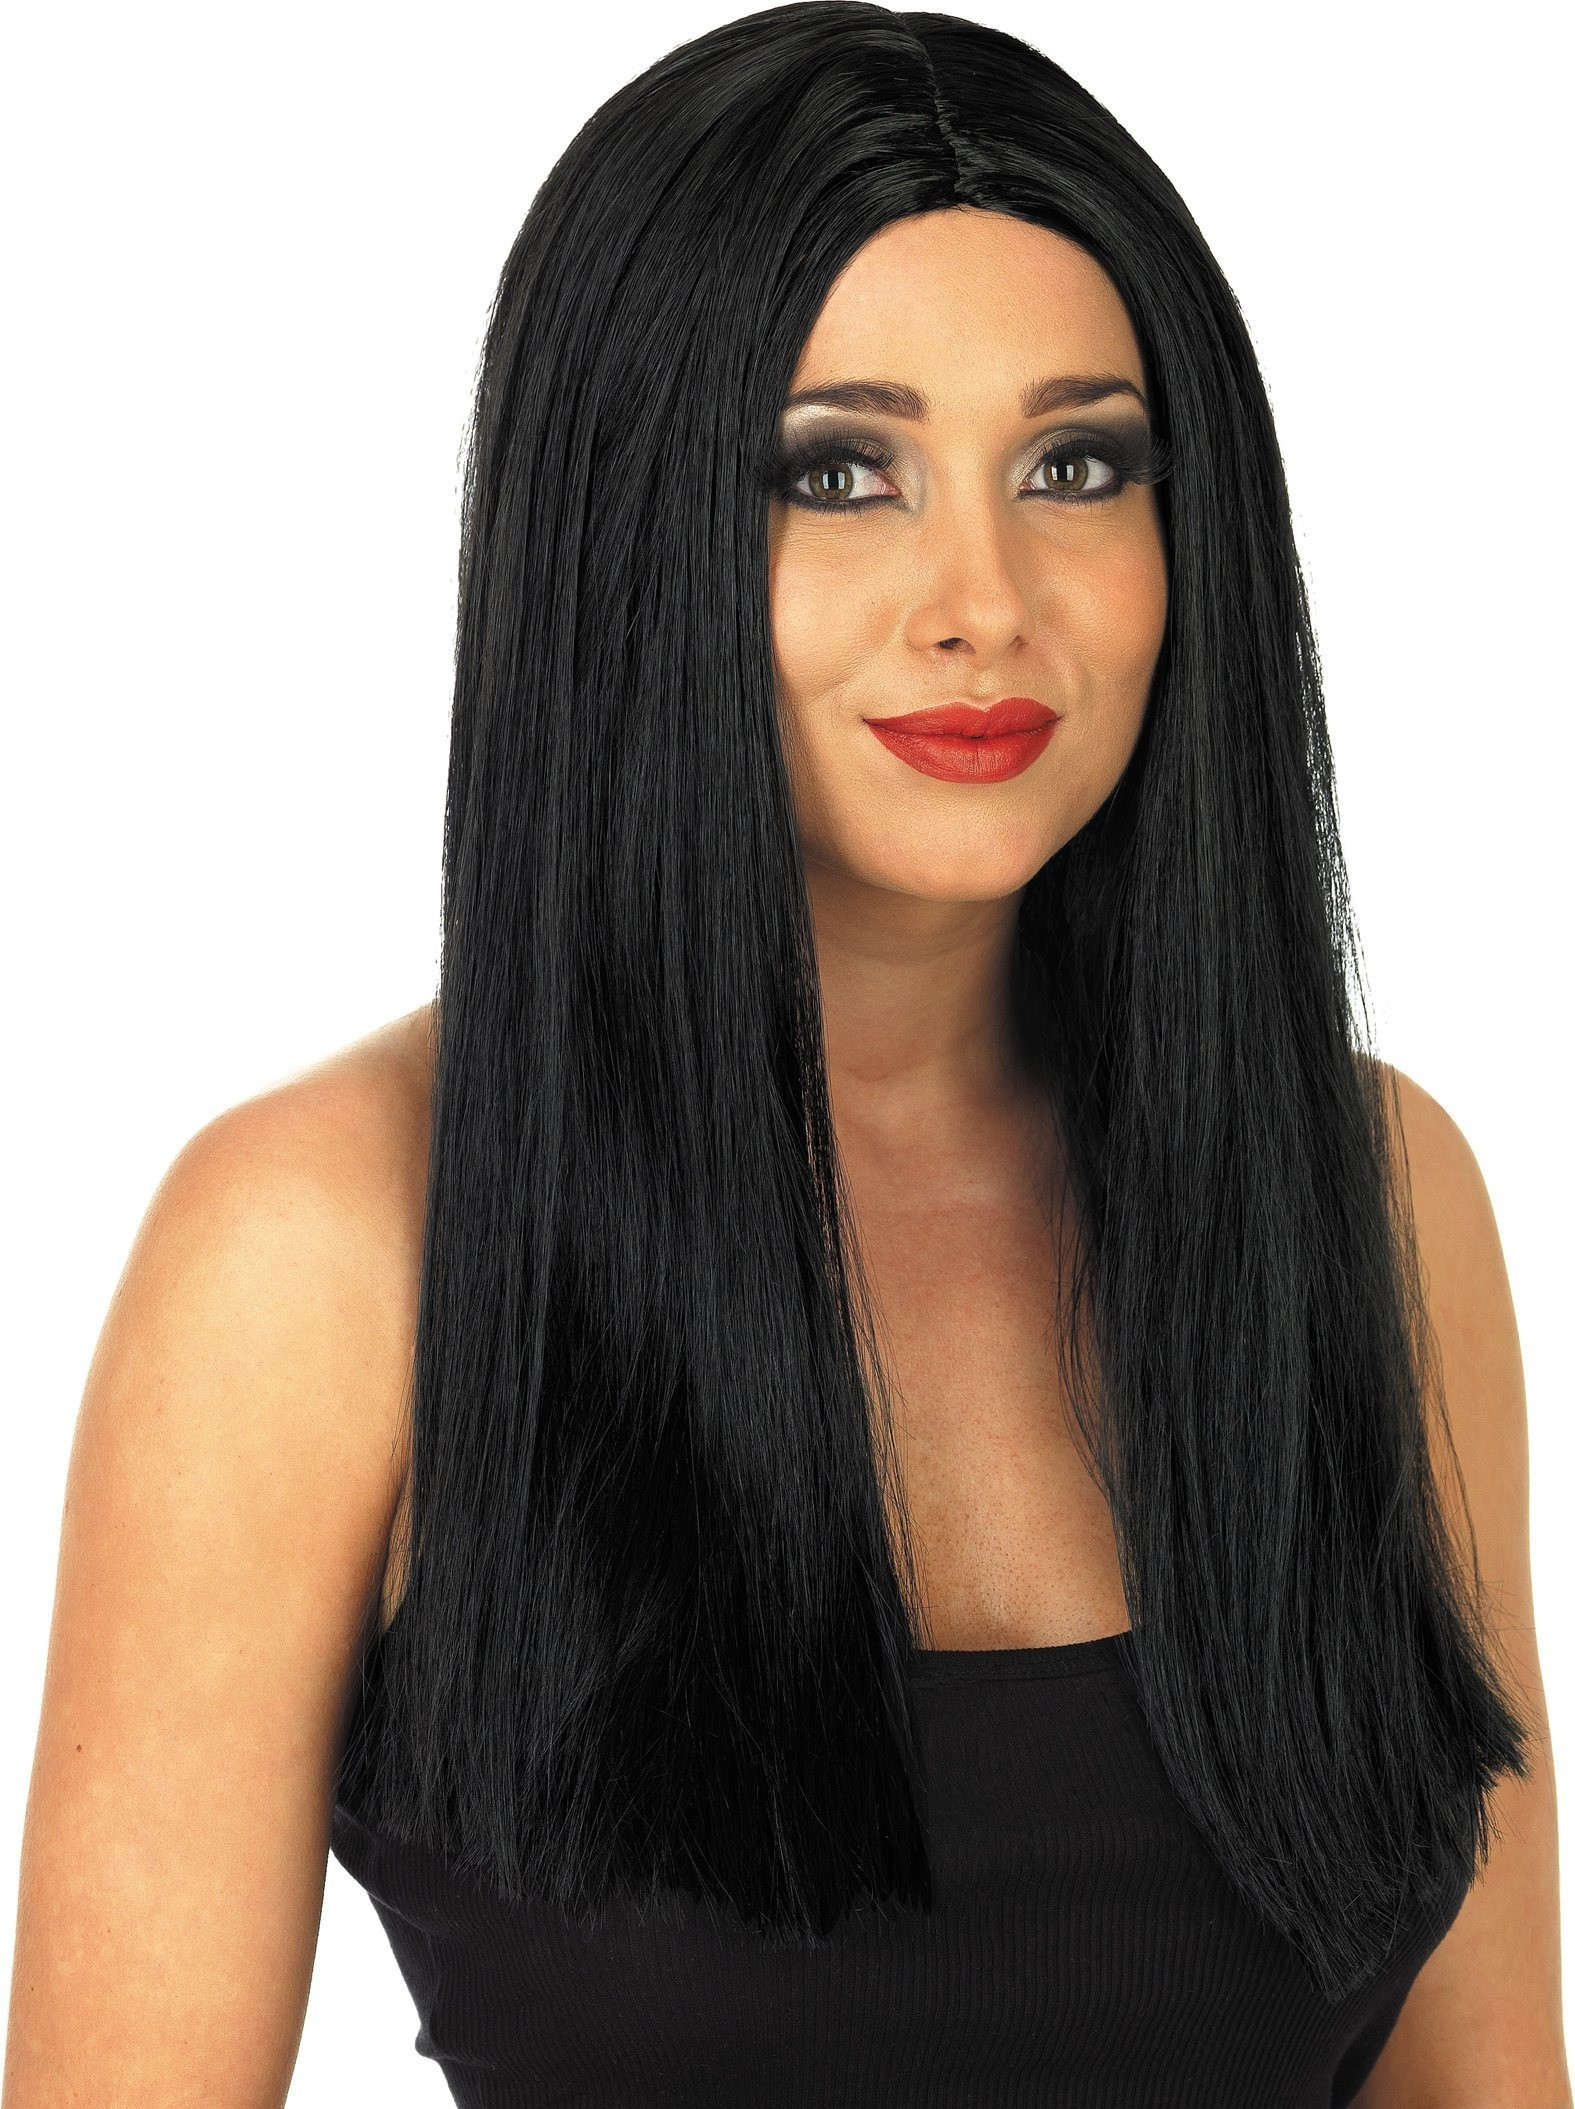 Long Black Wig (Halloween Wigs)